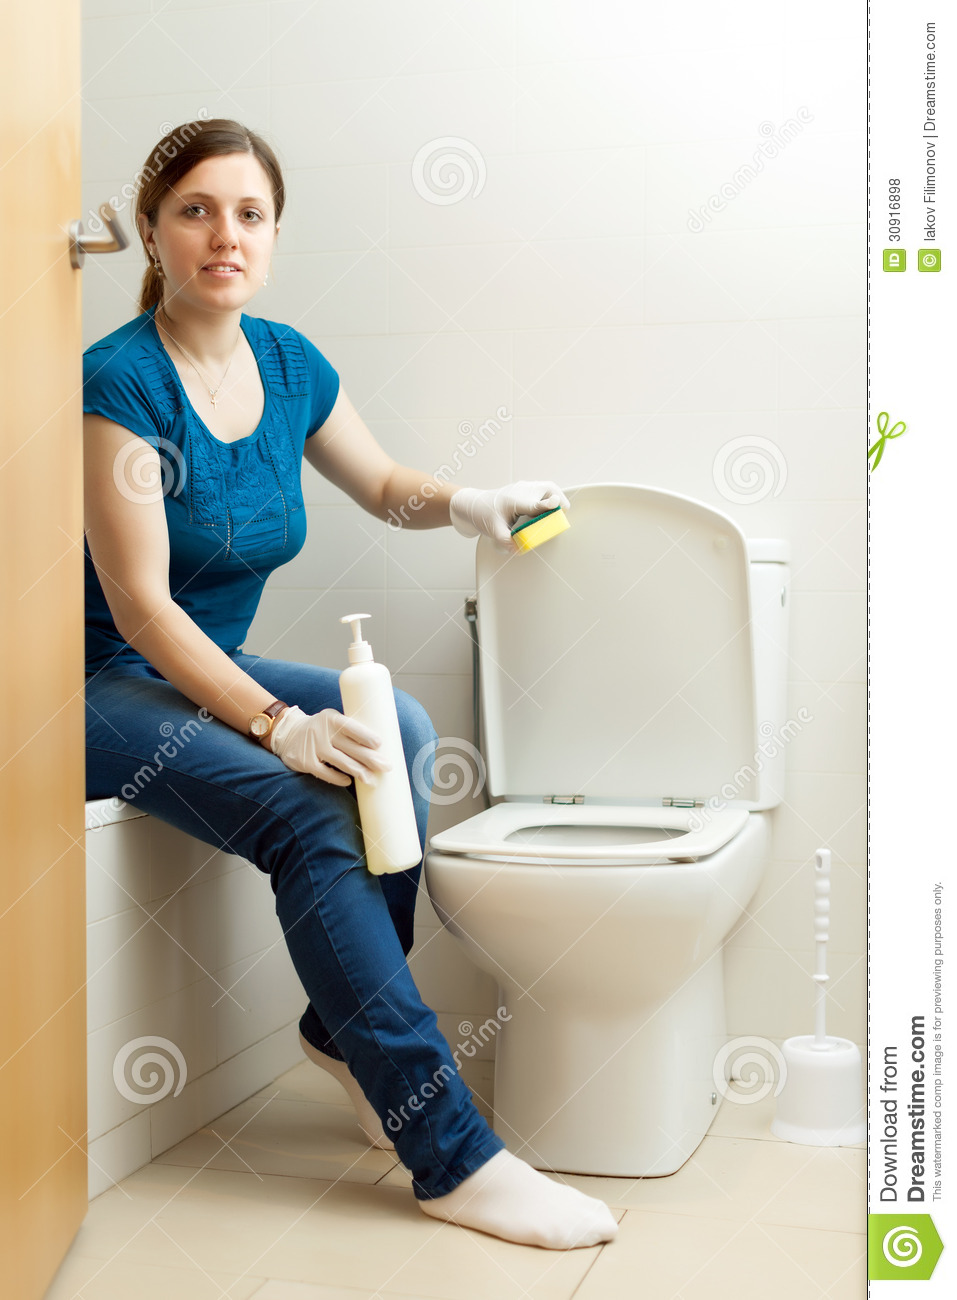 Woman Cleaning Toilet Bowl With Sponge Stock Photo Image Of - Bathroom cleaner person